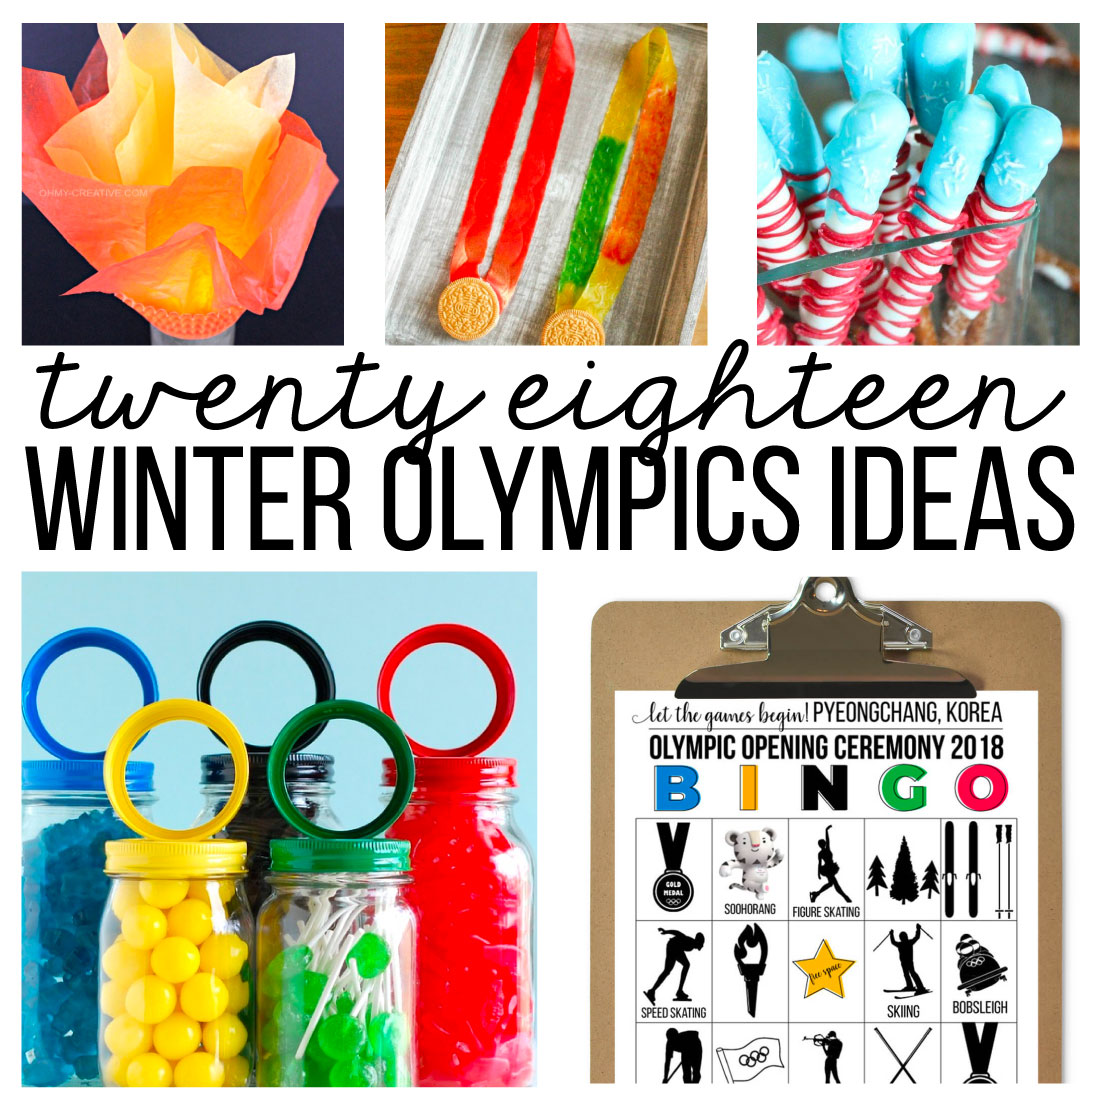 Winter Olympics 2018 Ideas